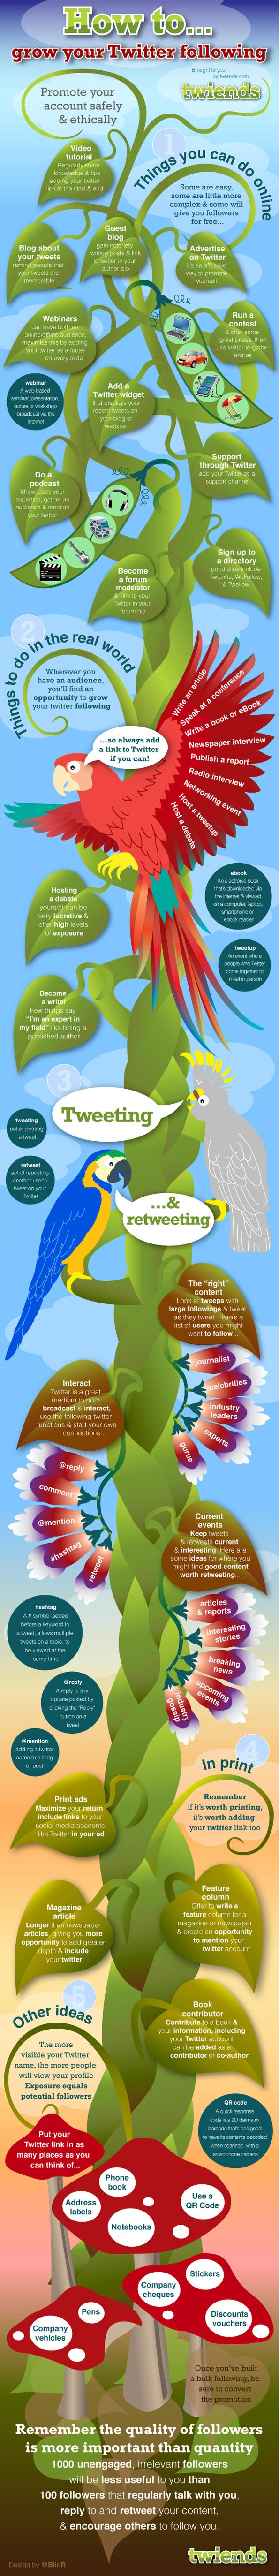 Infographic Twiiter Followers The Trent